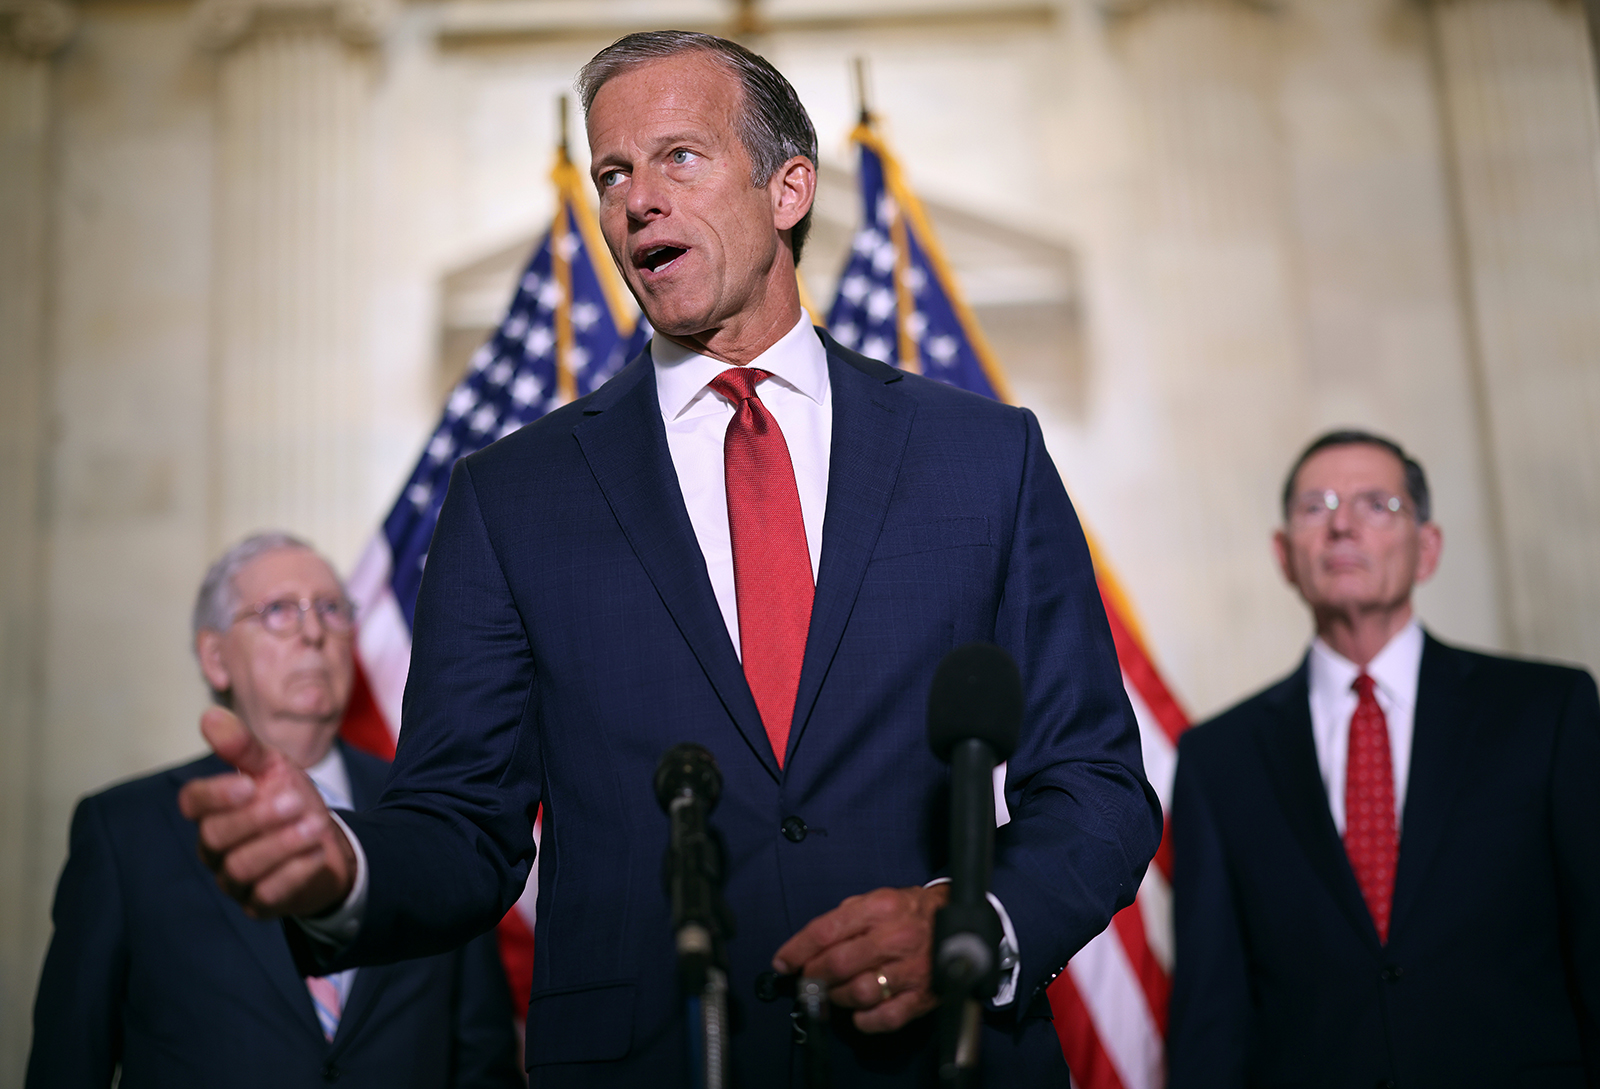 Senator John Thune speaks to reporters following the weekly Republican policy luncheons on Capitol Hill on May 25, in Washington, DC.